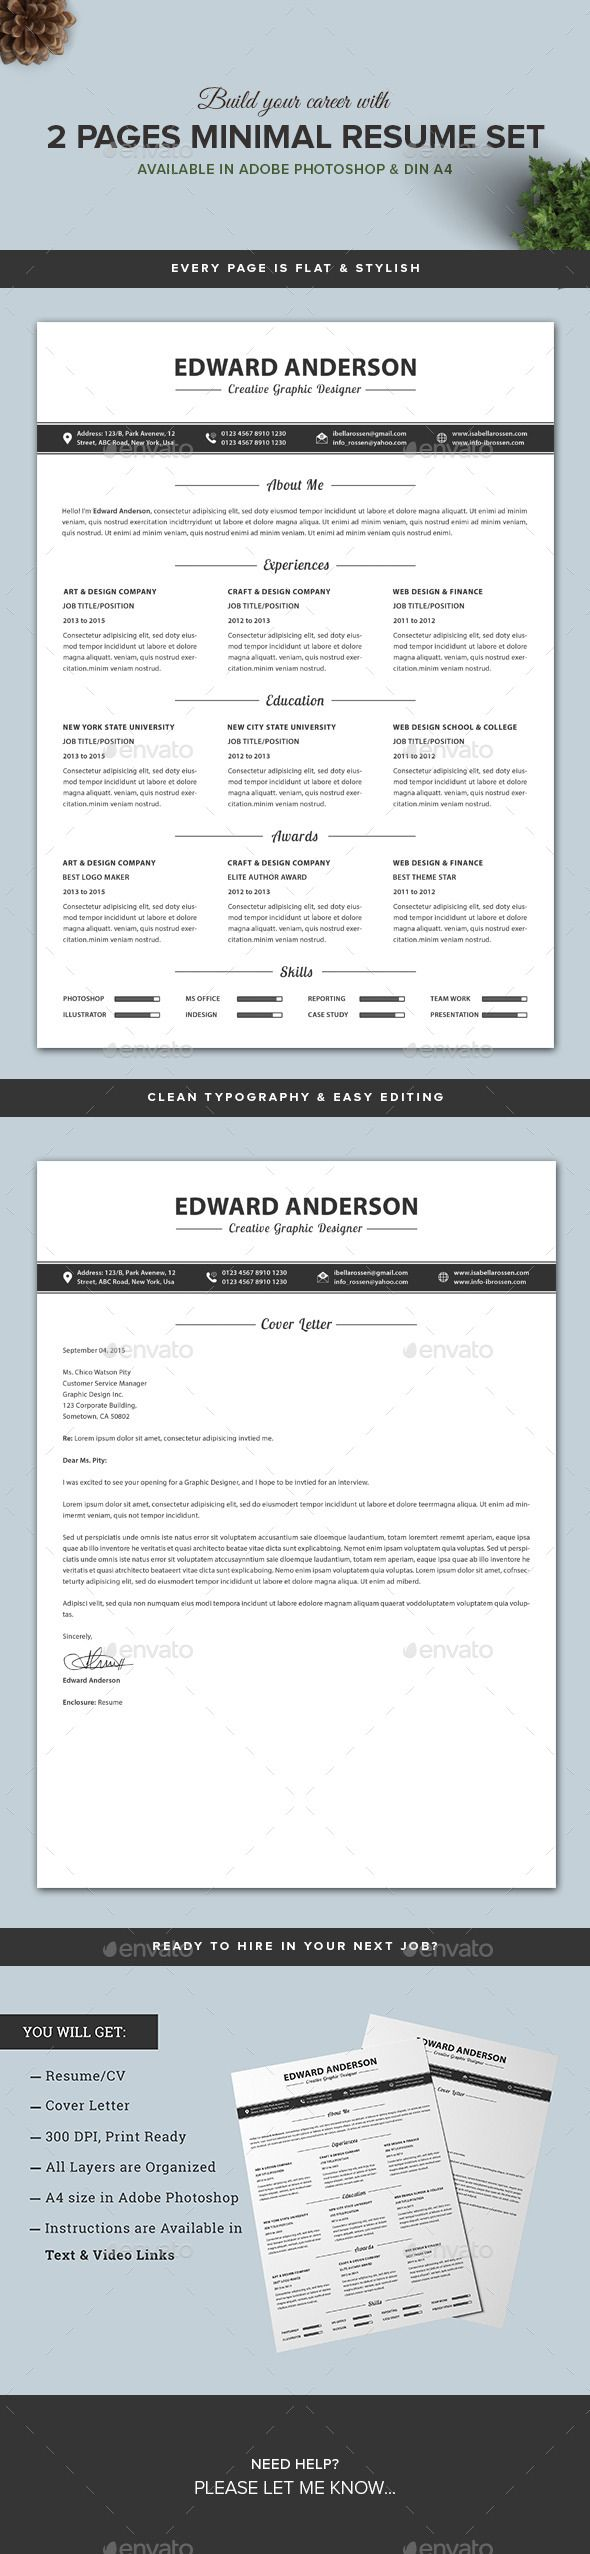 respiratory therapy resume interview letter format respiratory